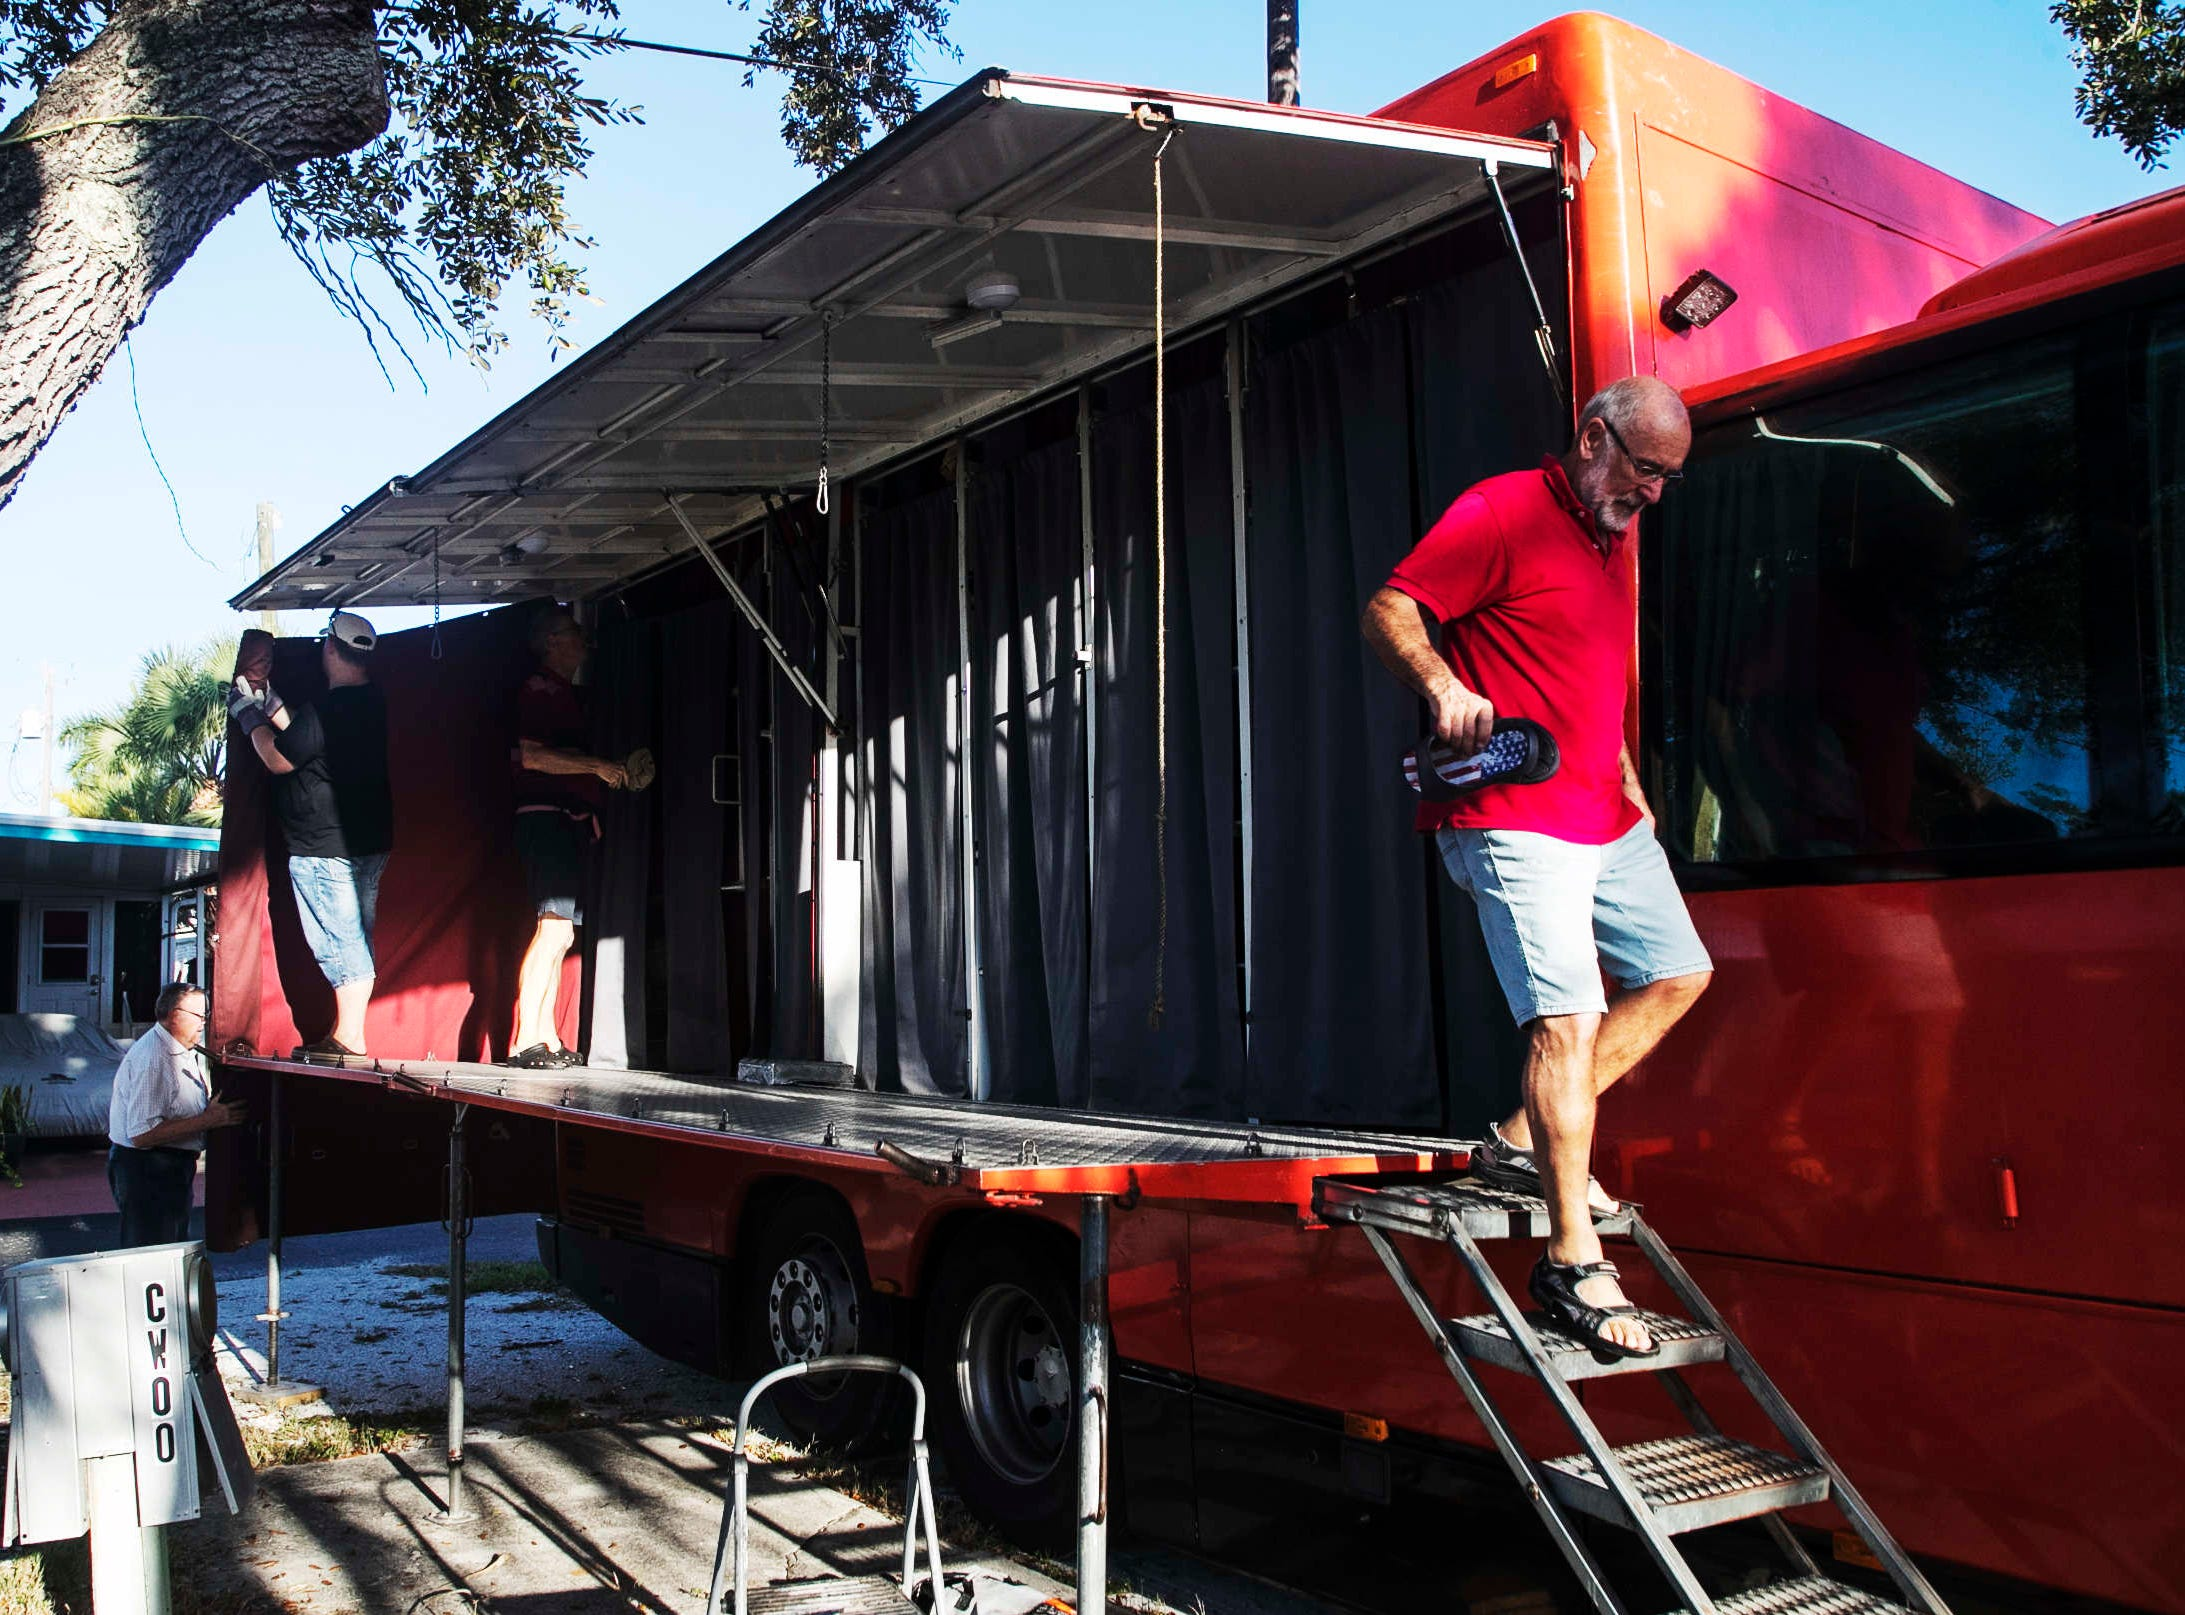 """Rotel Tours guest Fritz Loescher helps dissassemble the living quarters of the  on the Rotel bus, a """"rolling hotel"""" at the Red Coconut R.V. Resort on Fort Myers Beach on 10/16/2018. This tour started in New Jersey and is touring the eastern U.S. Rotel Tours are worldwide. The tour is visiting the area for a couple of days."""